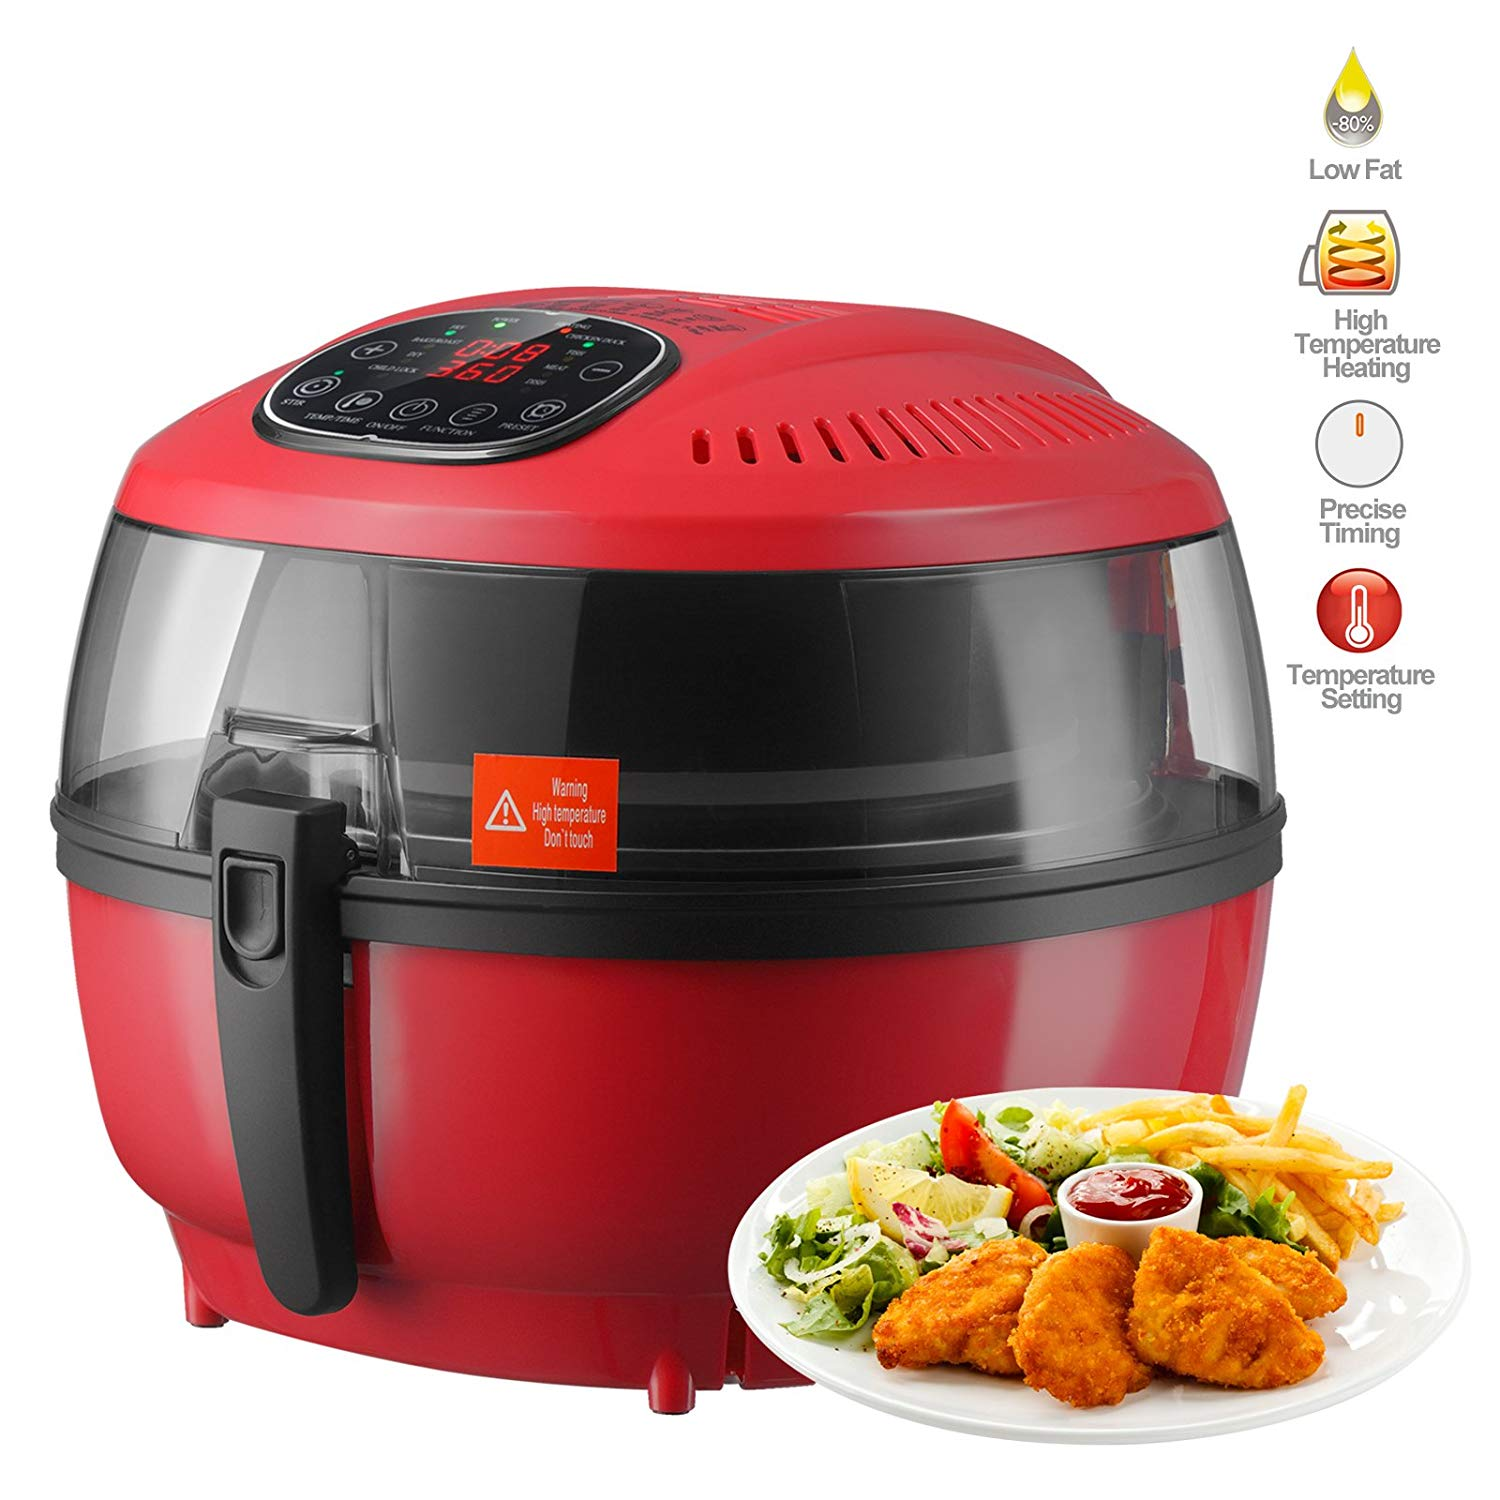 Cheap Cooking Oil Fat Find Deals On Line At Alibabacom Russell Hobbs Purifry Health Fryer Get Quotations Mecor 10qt Electric Air Digital Touch Screen Temperature Timer Control With Presets For Healthy